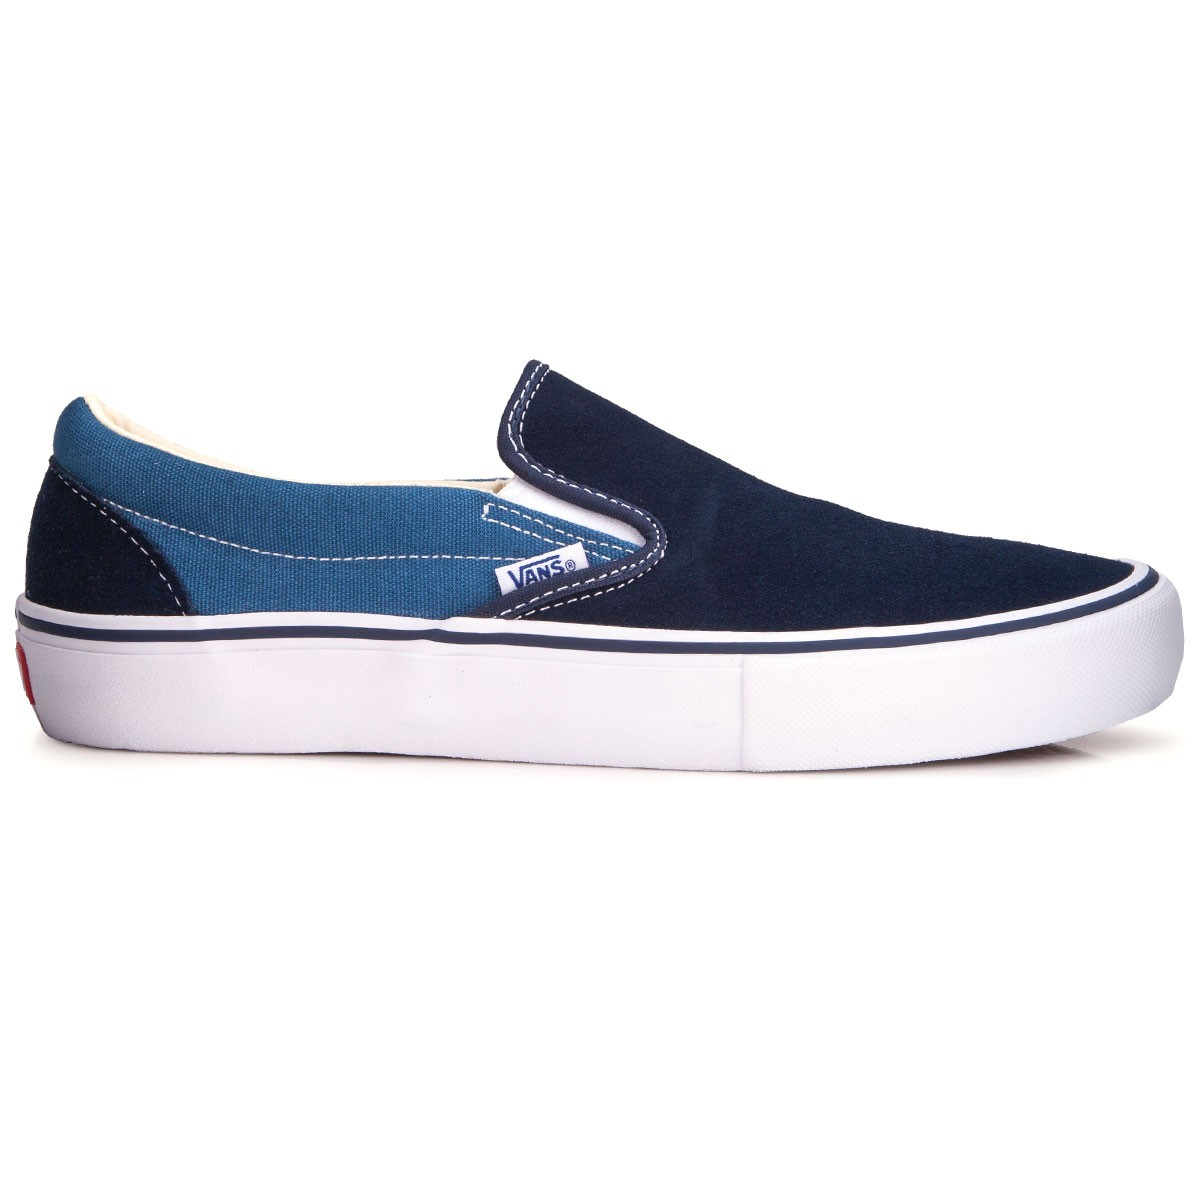 Navy Slip On Shoes